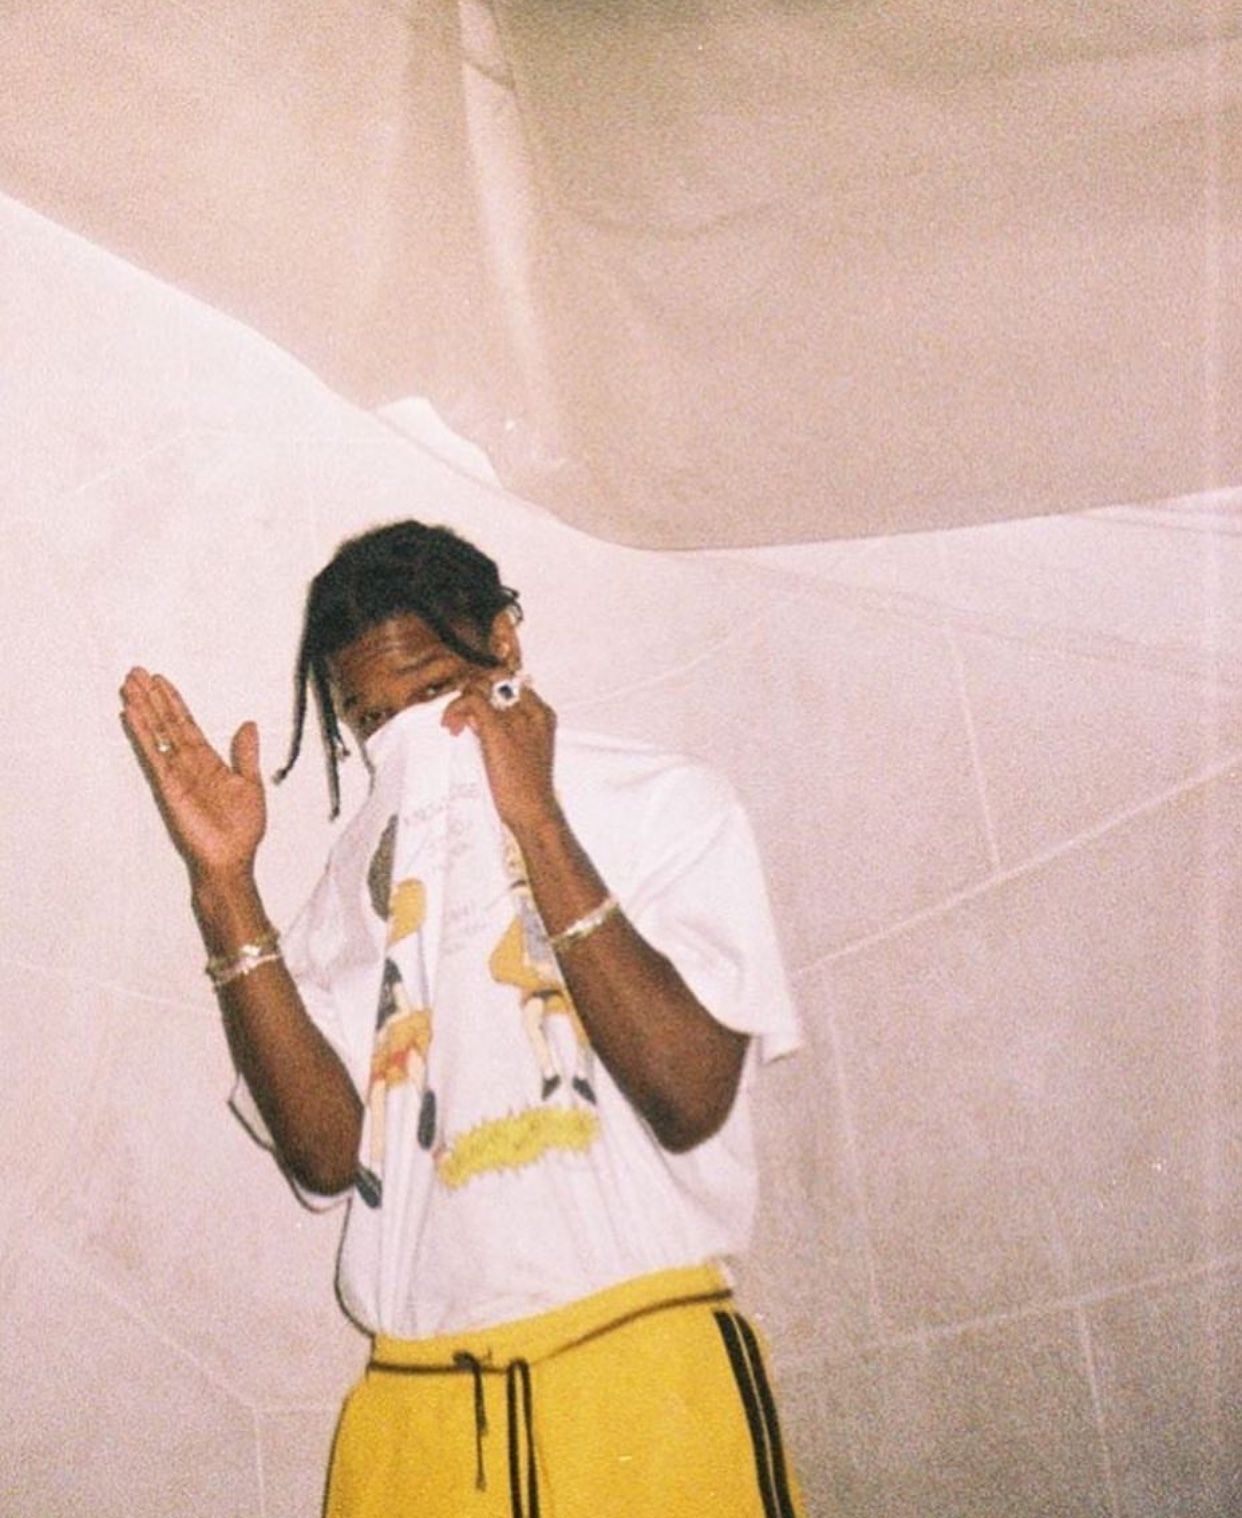 ASAP rocky Pretty flacko, Asap rocky wallpaper, Rocky